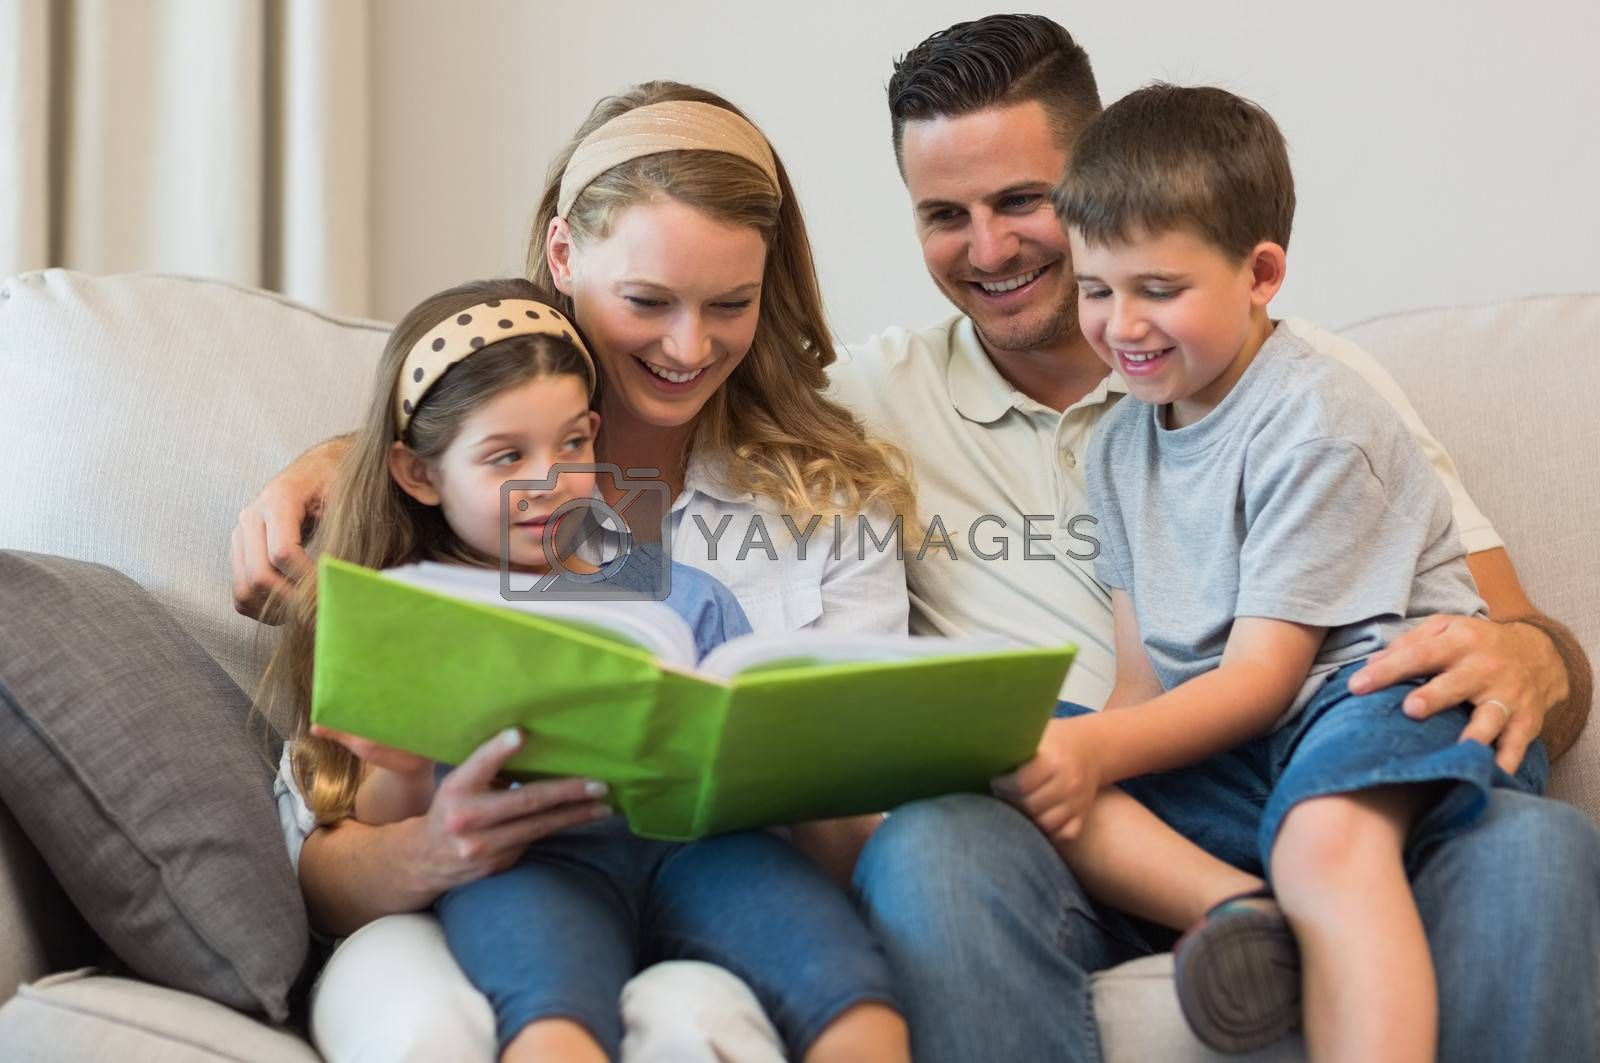 Family watching photo album on sofa by Wavebreakmedia